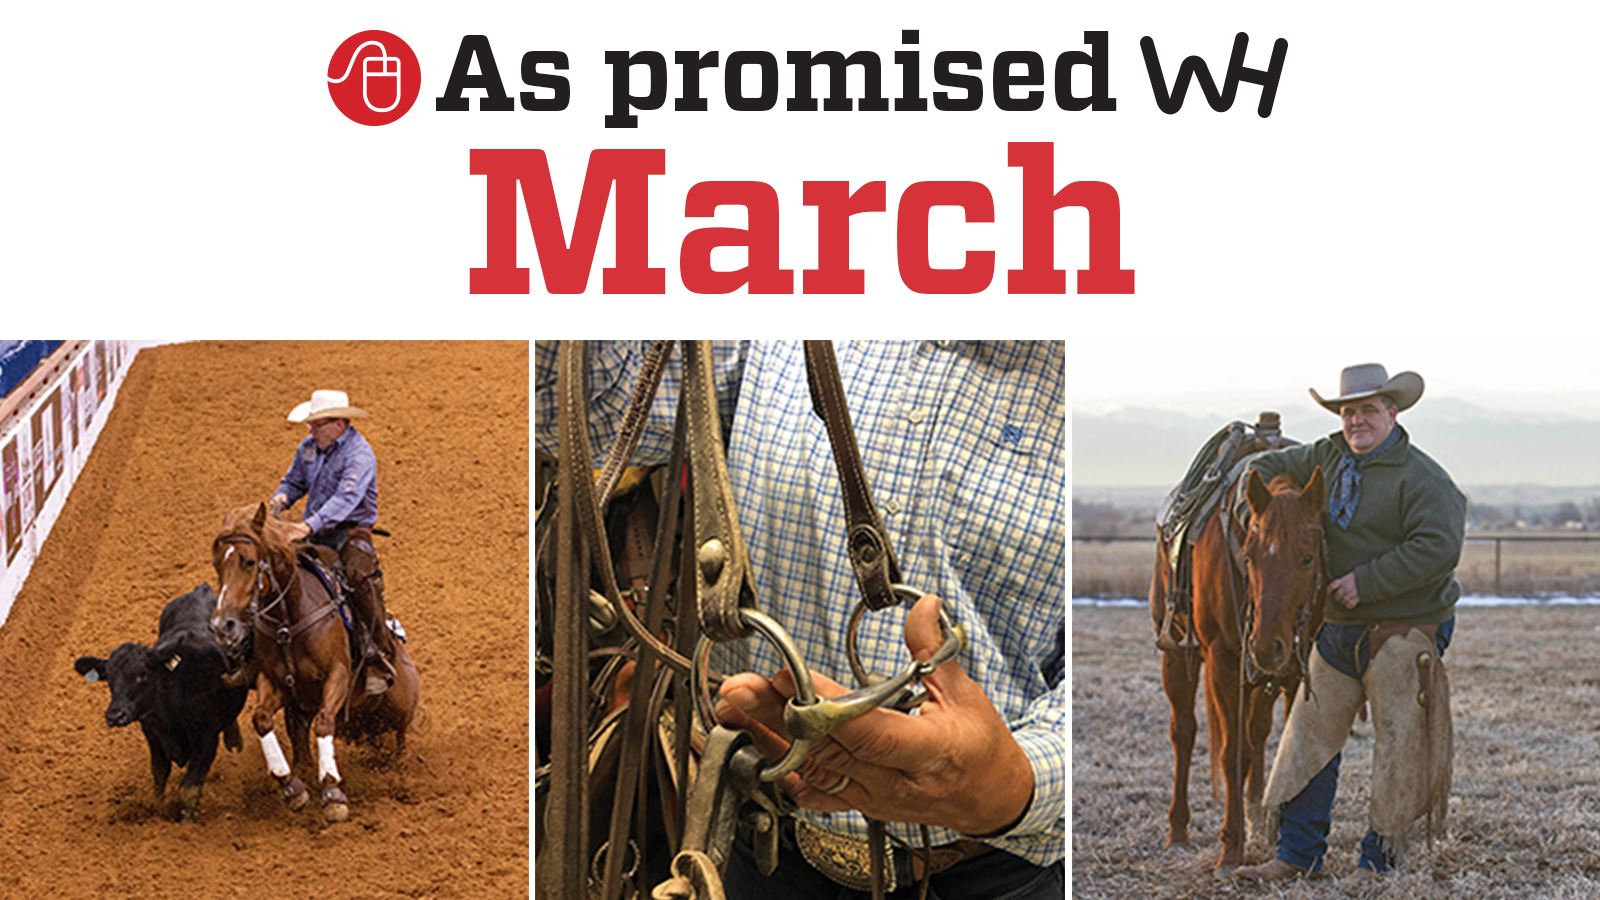 March 2020 Western Horseman promised content graphic